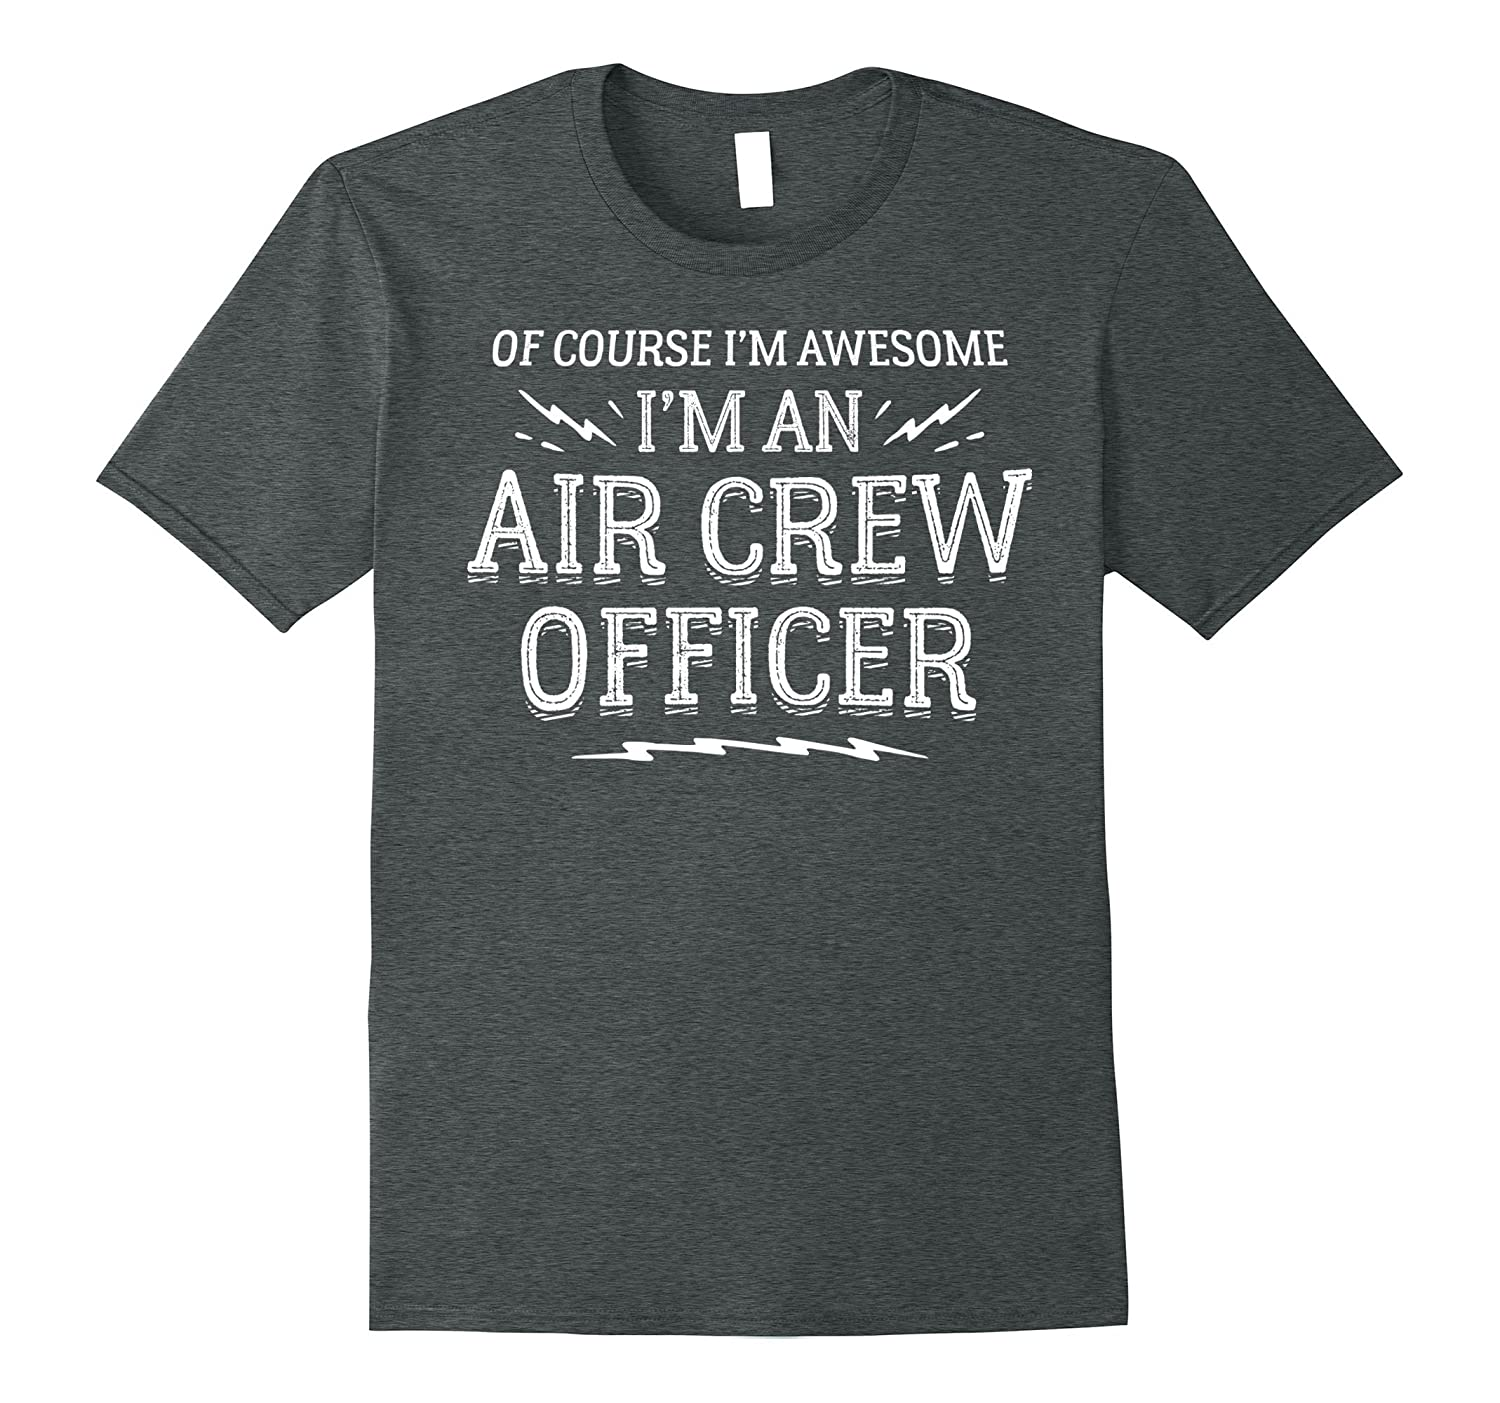 Air Crew Officer Work T-Shirt – Of Course I'm Awesome